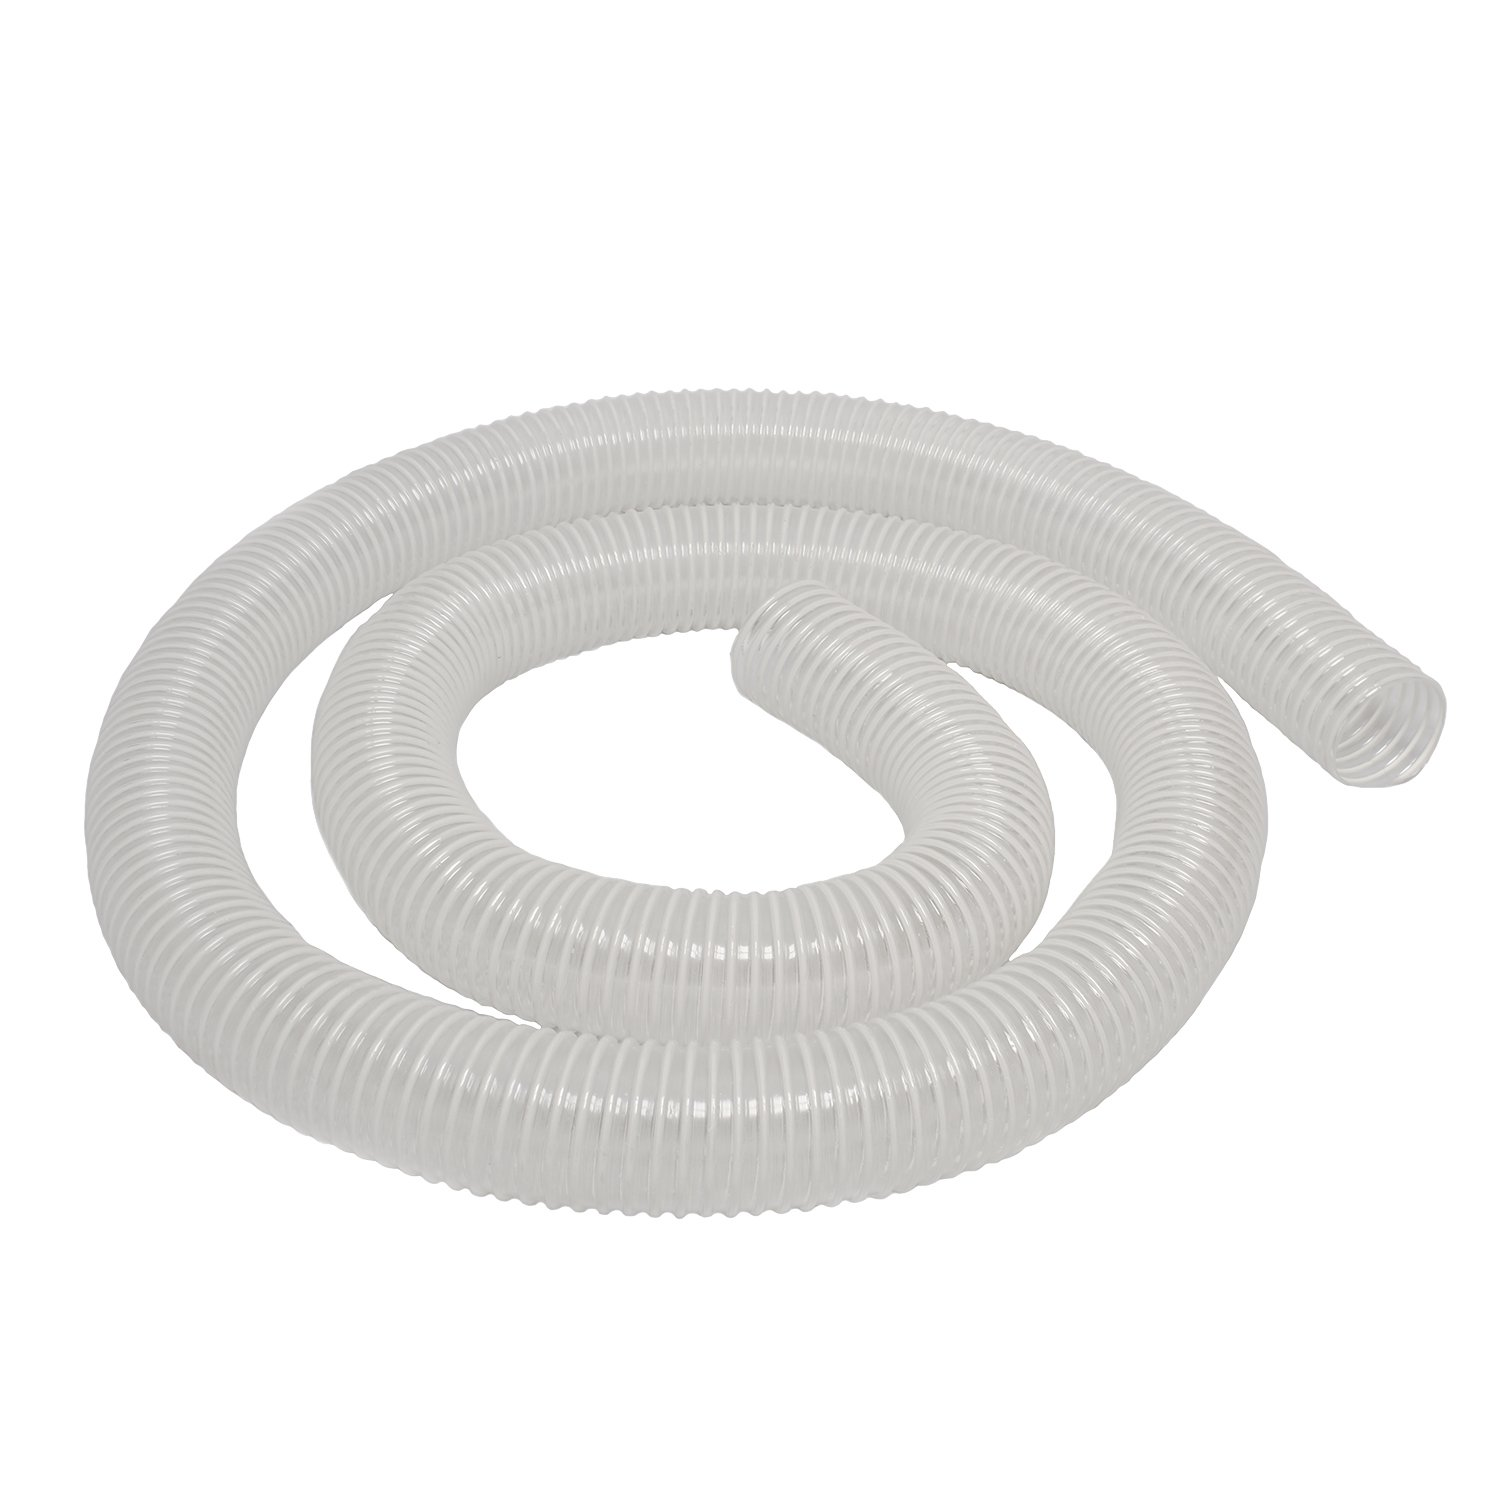 In Quality Honest Heavy Duty/ High Pressure/ Suction Hoses Grey Superior